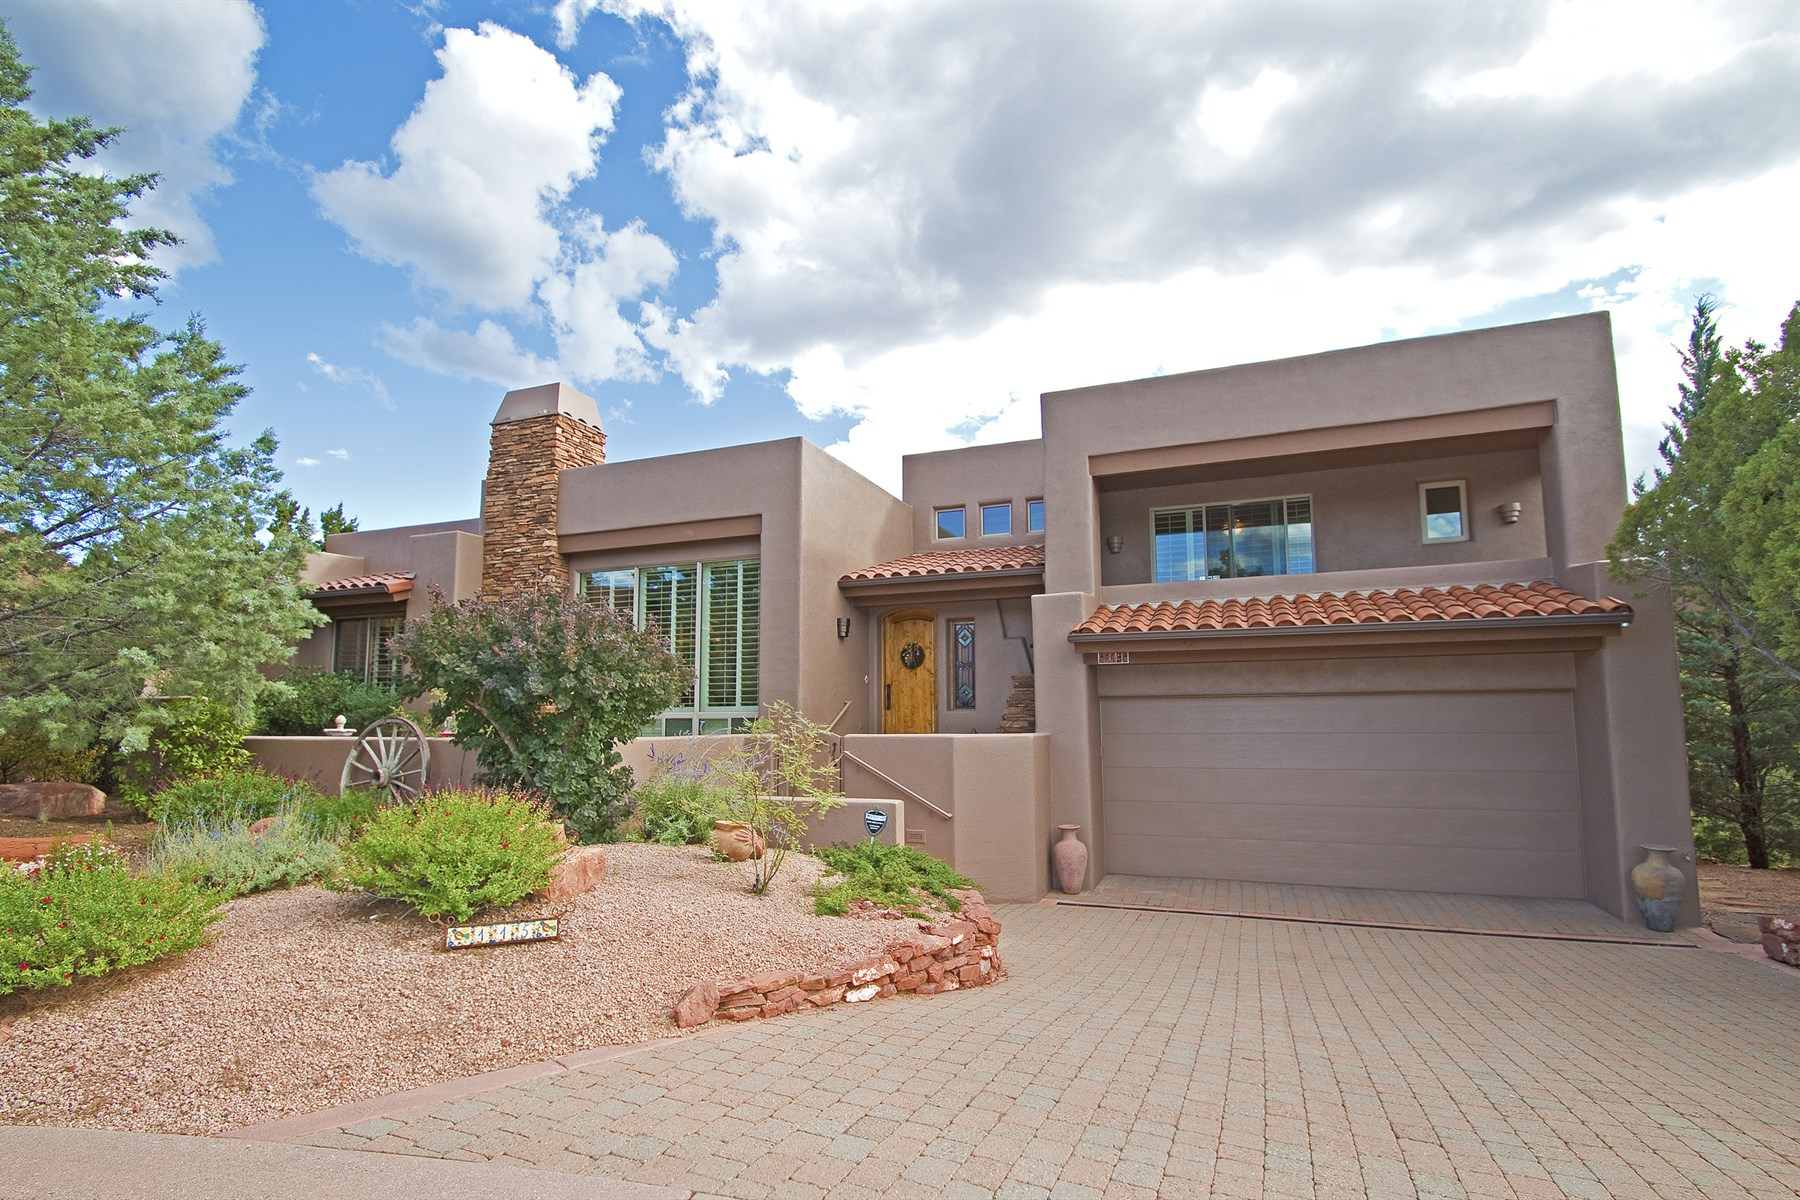 一戸建て のために 売買 アット Beautiful home in one of West Sedona's most desirable gated communities 115 Calle Marguerite Sedona, アリゾナ, 86336 アメリカ合衆国